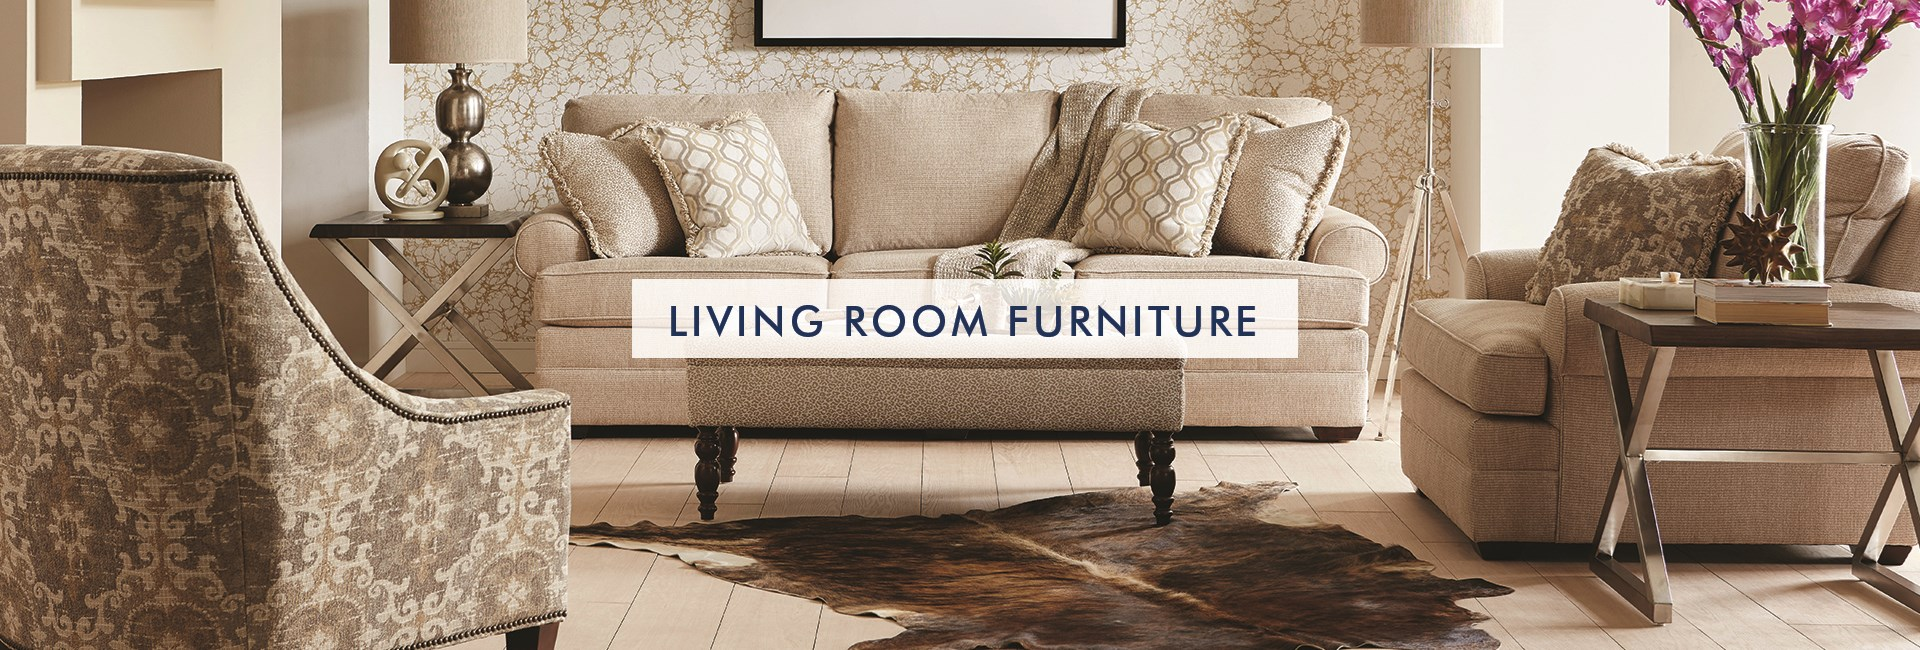 Shop Living Room Furniture  Beaumont, Port Arthur, Lake Charles